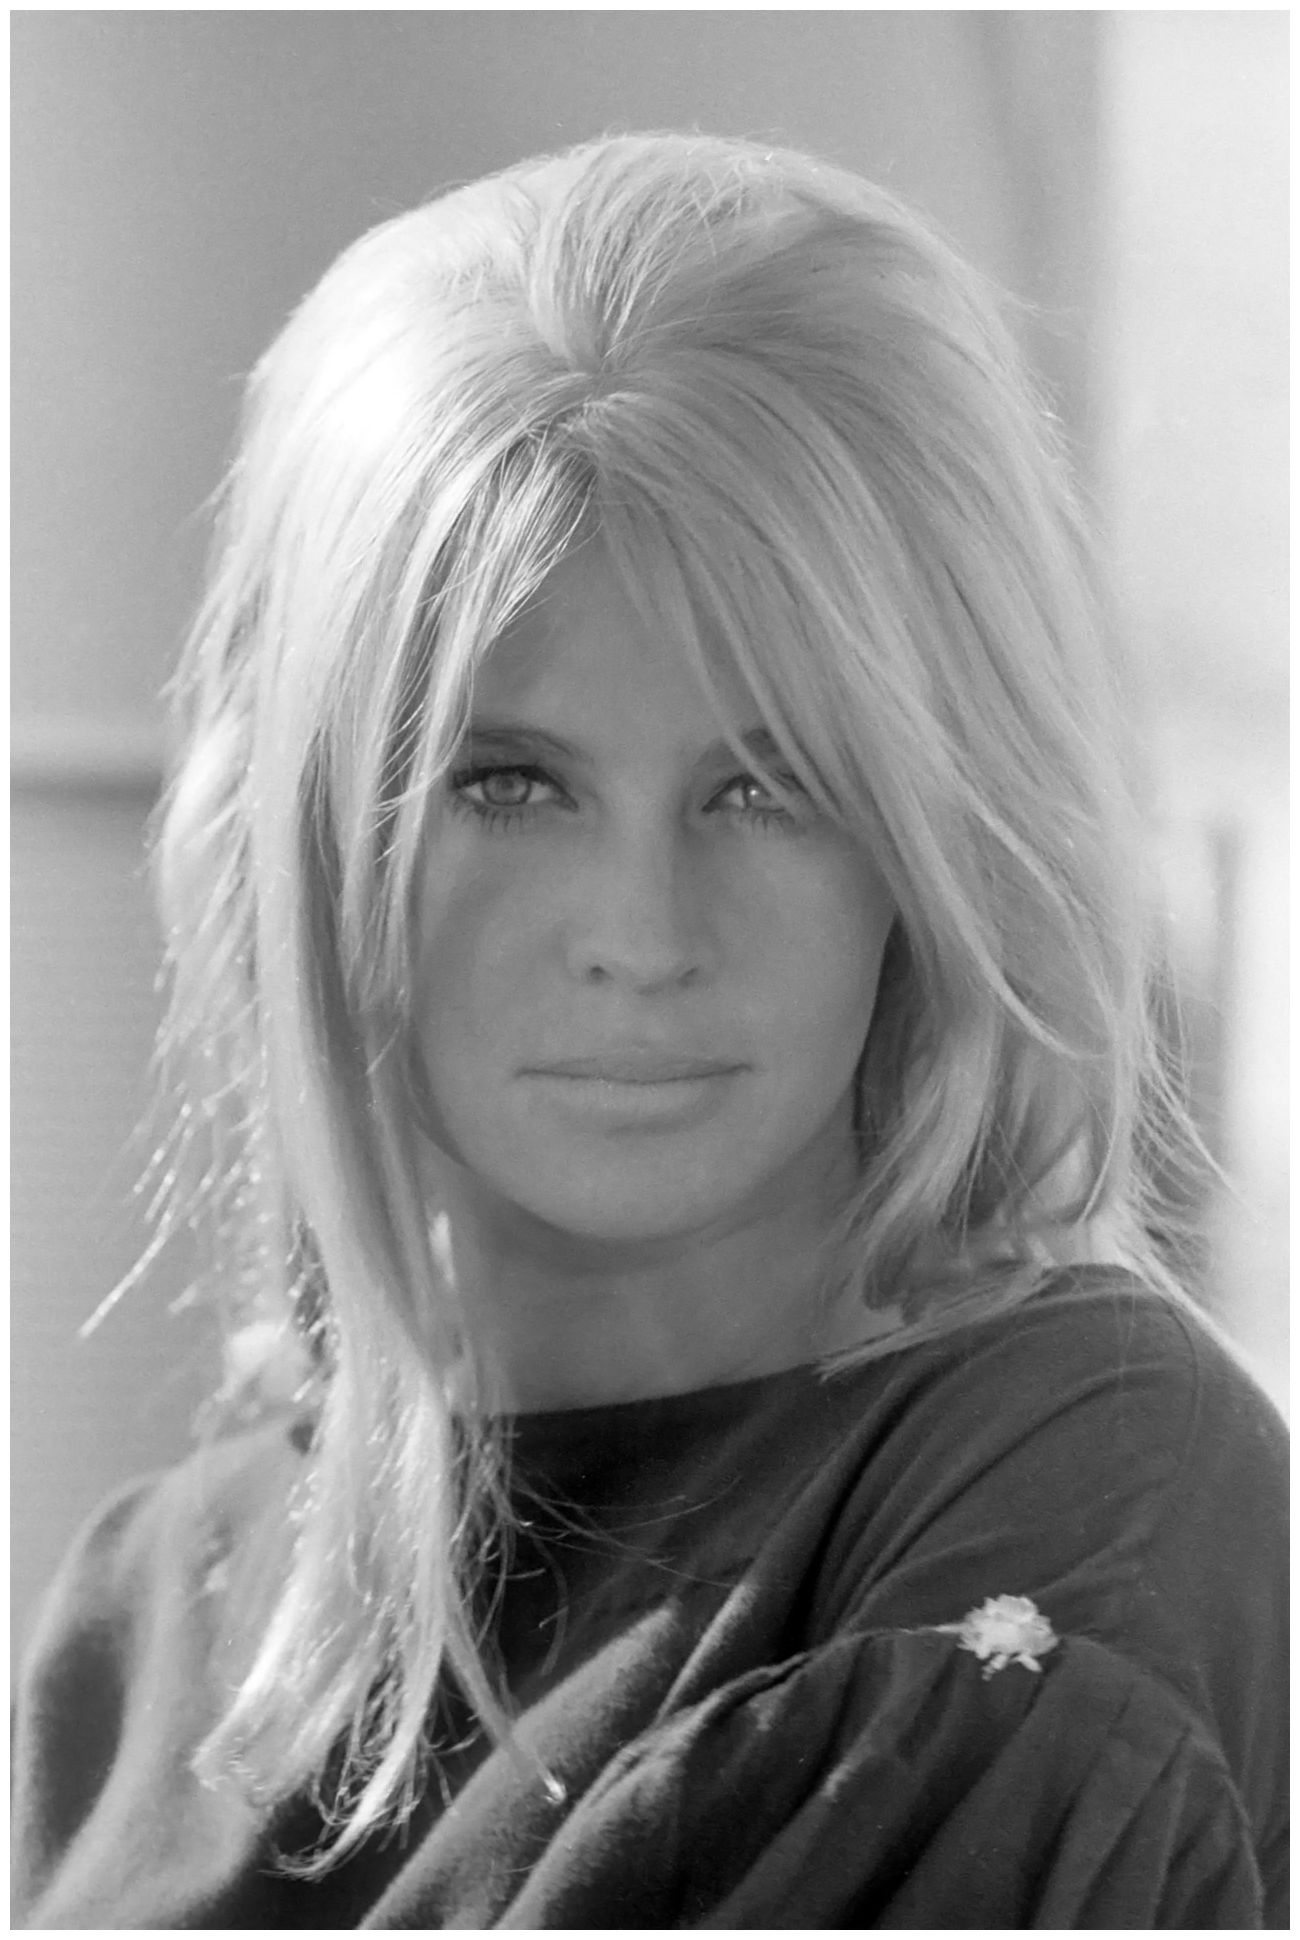 Julie Christie (born 1940 (born in Chabua, India)